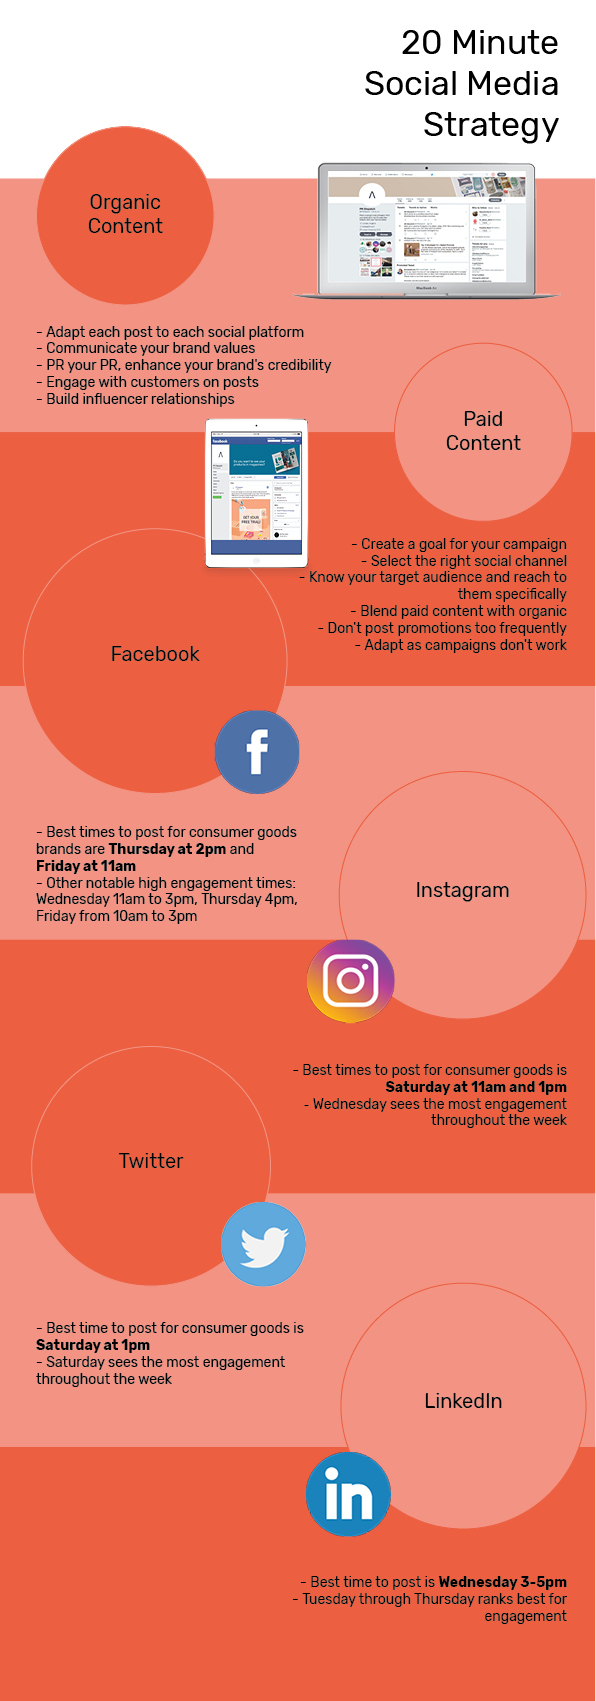 20 minute social media strategy inforgraphic.jpg